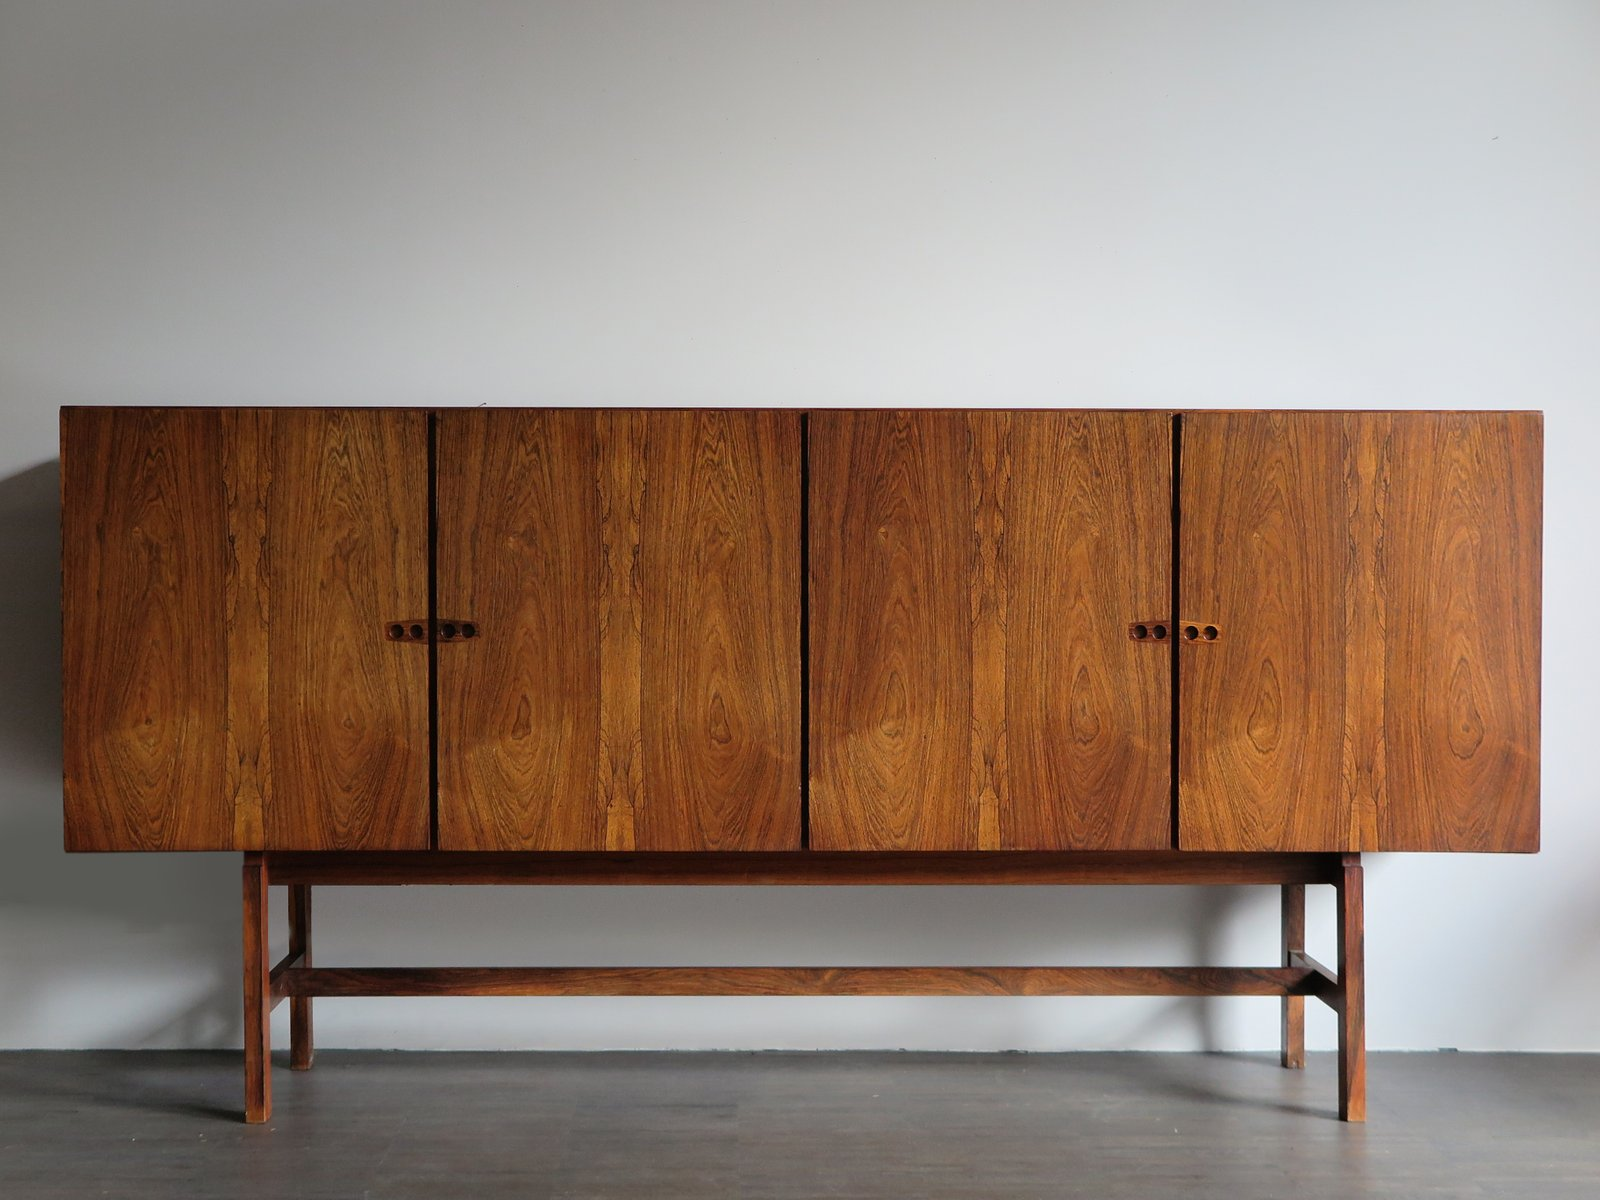 Danish Design Credenza : Vintage danish sideboard by arne vodder for sale at pamono